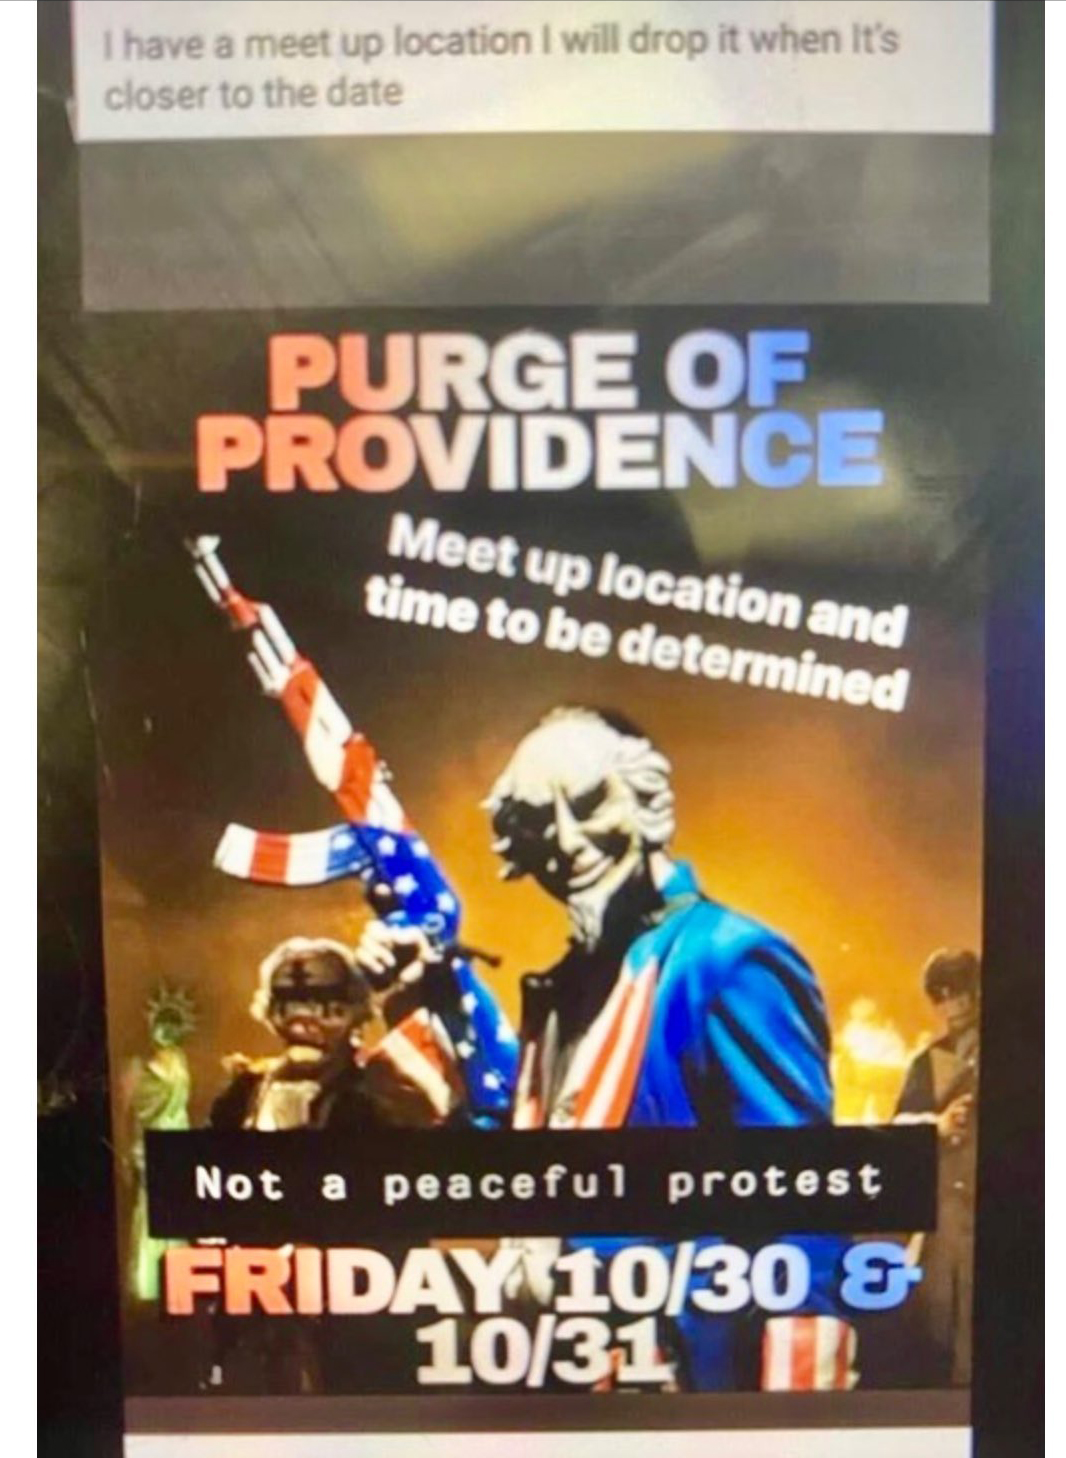 Is The Providence Purge coming?